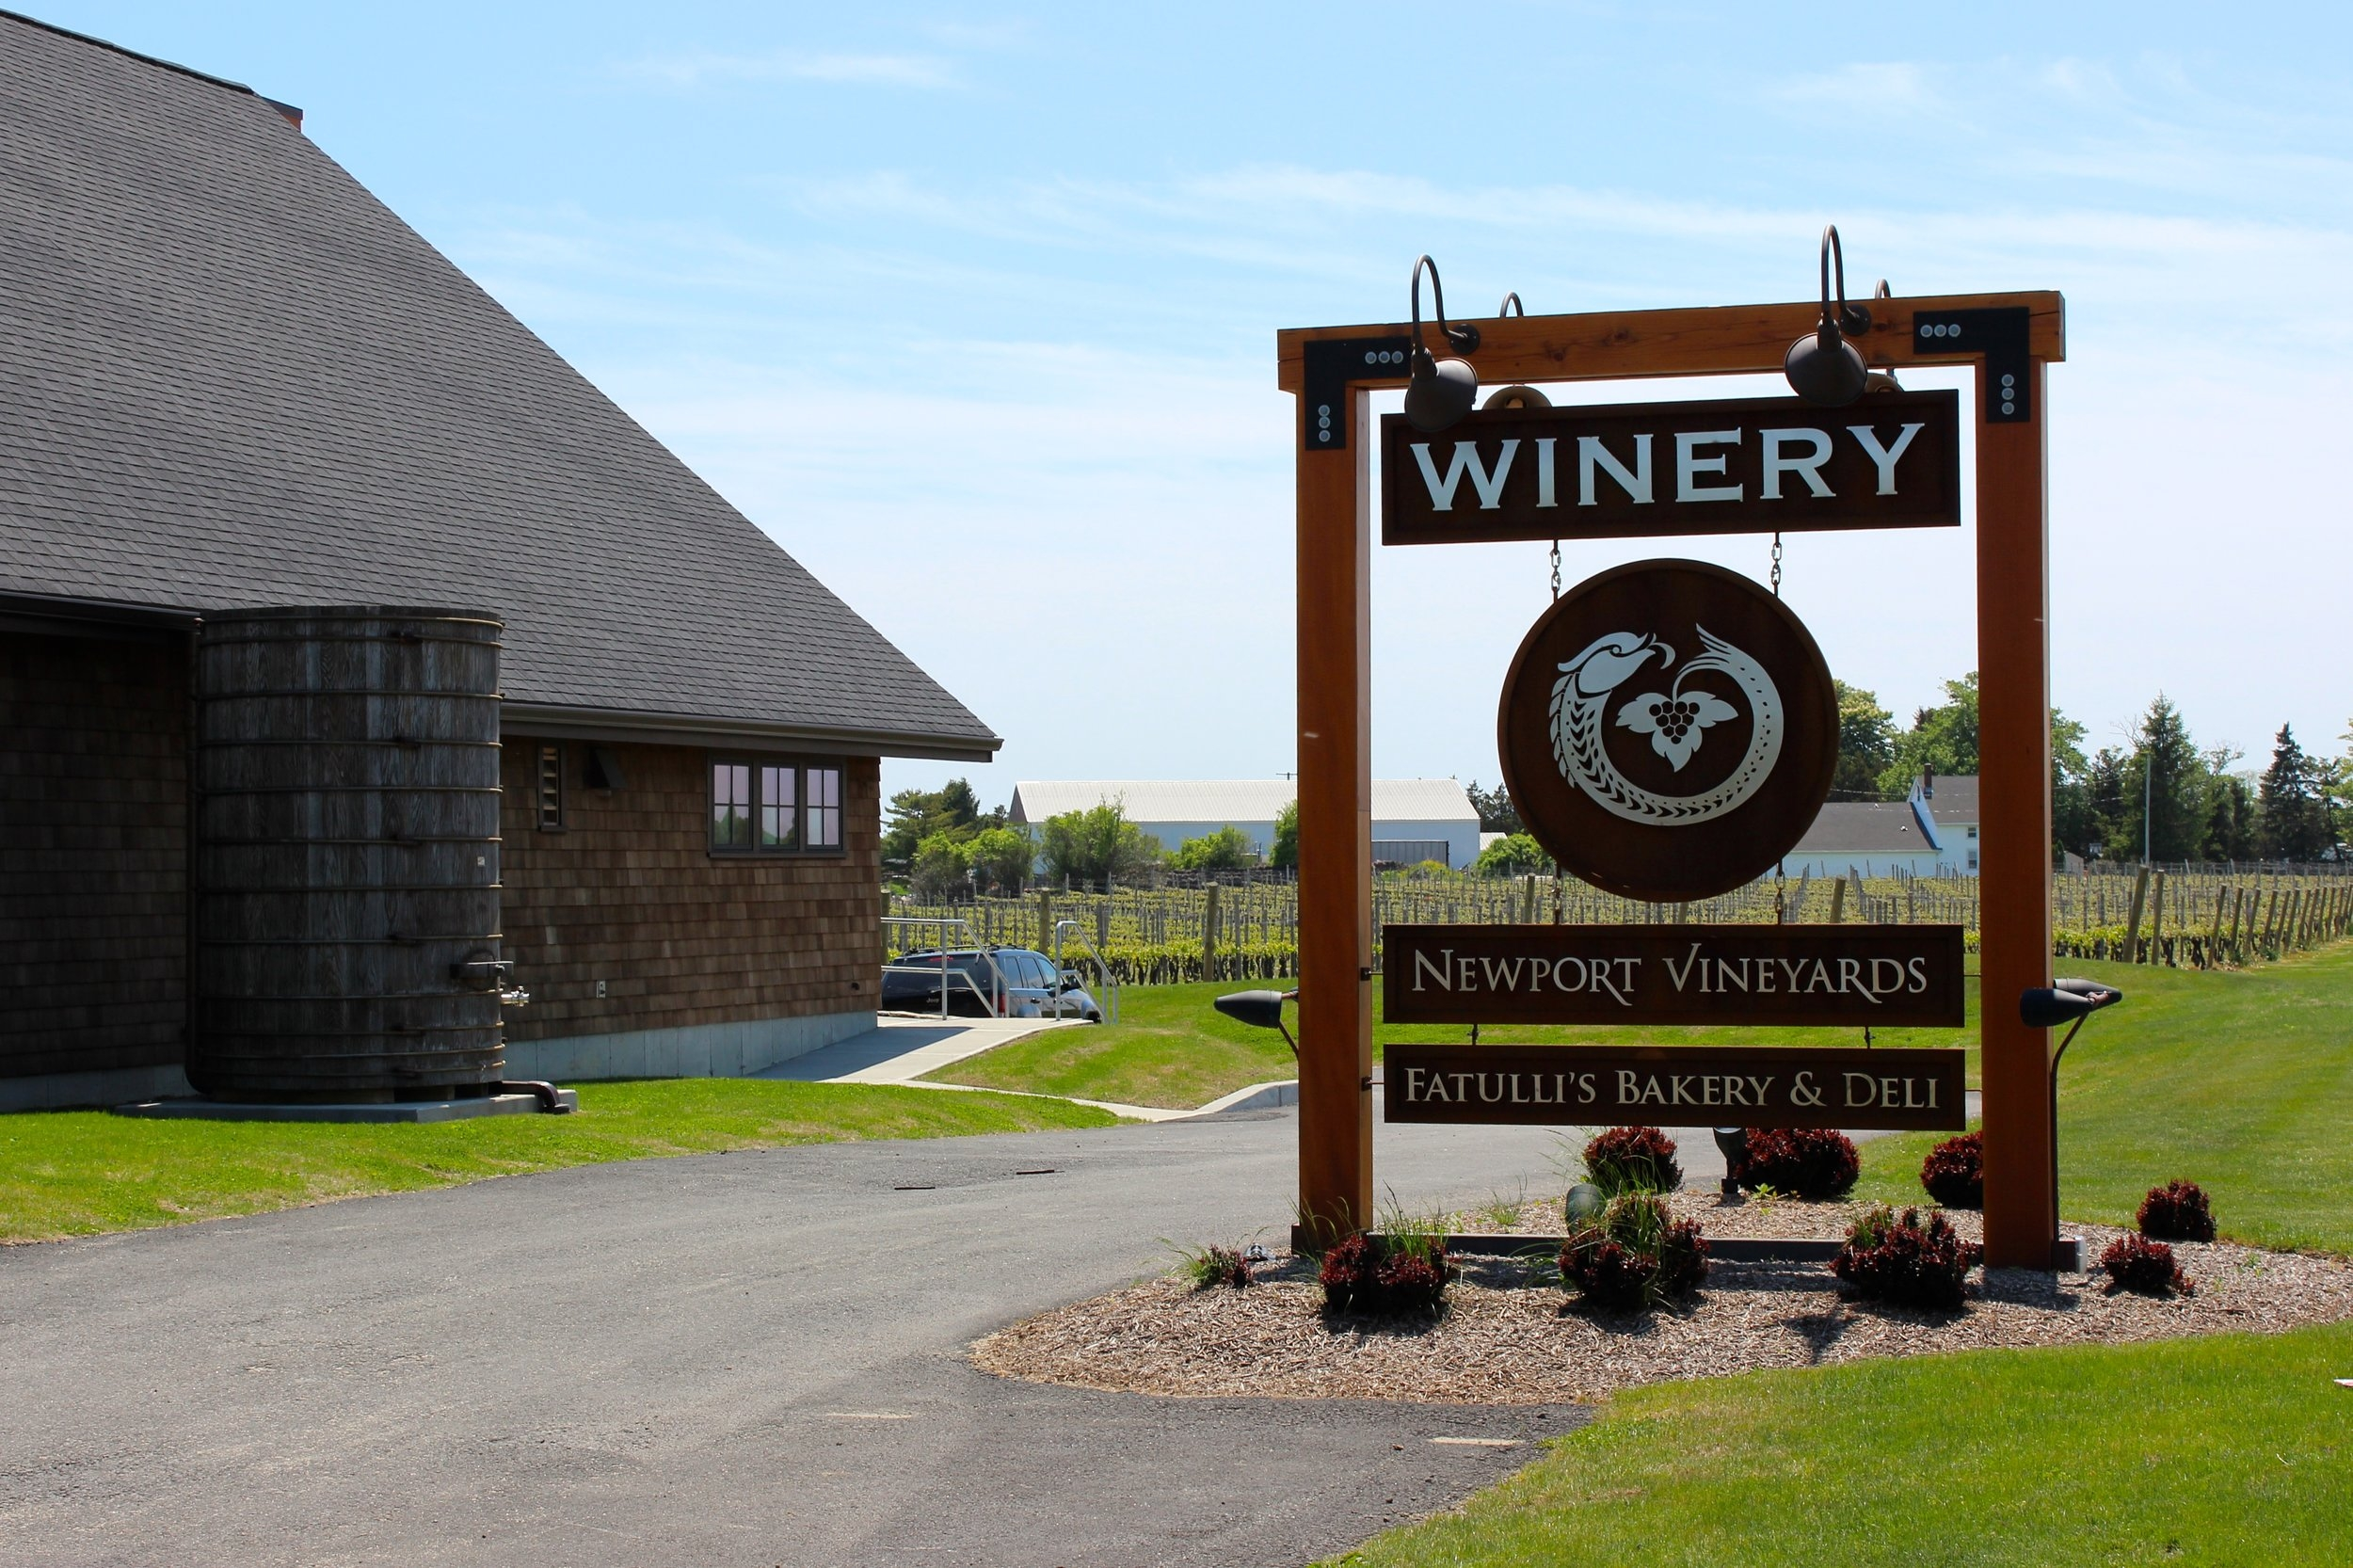 Newport Vineyards, Rhode Island